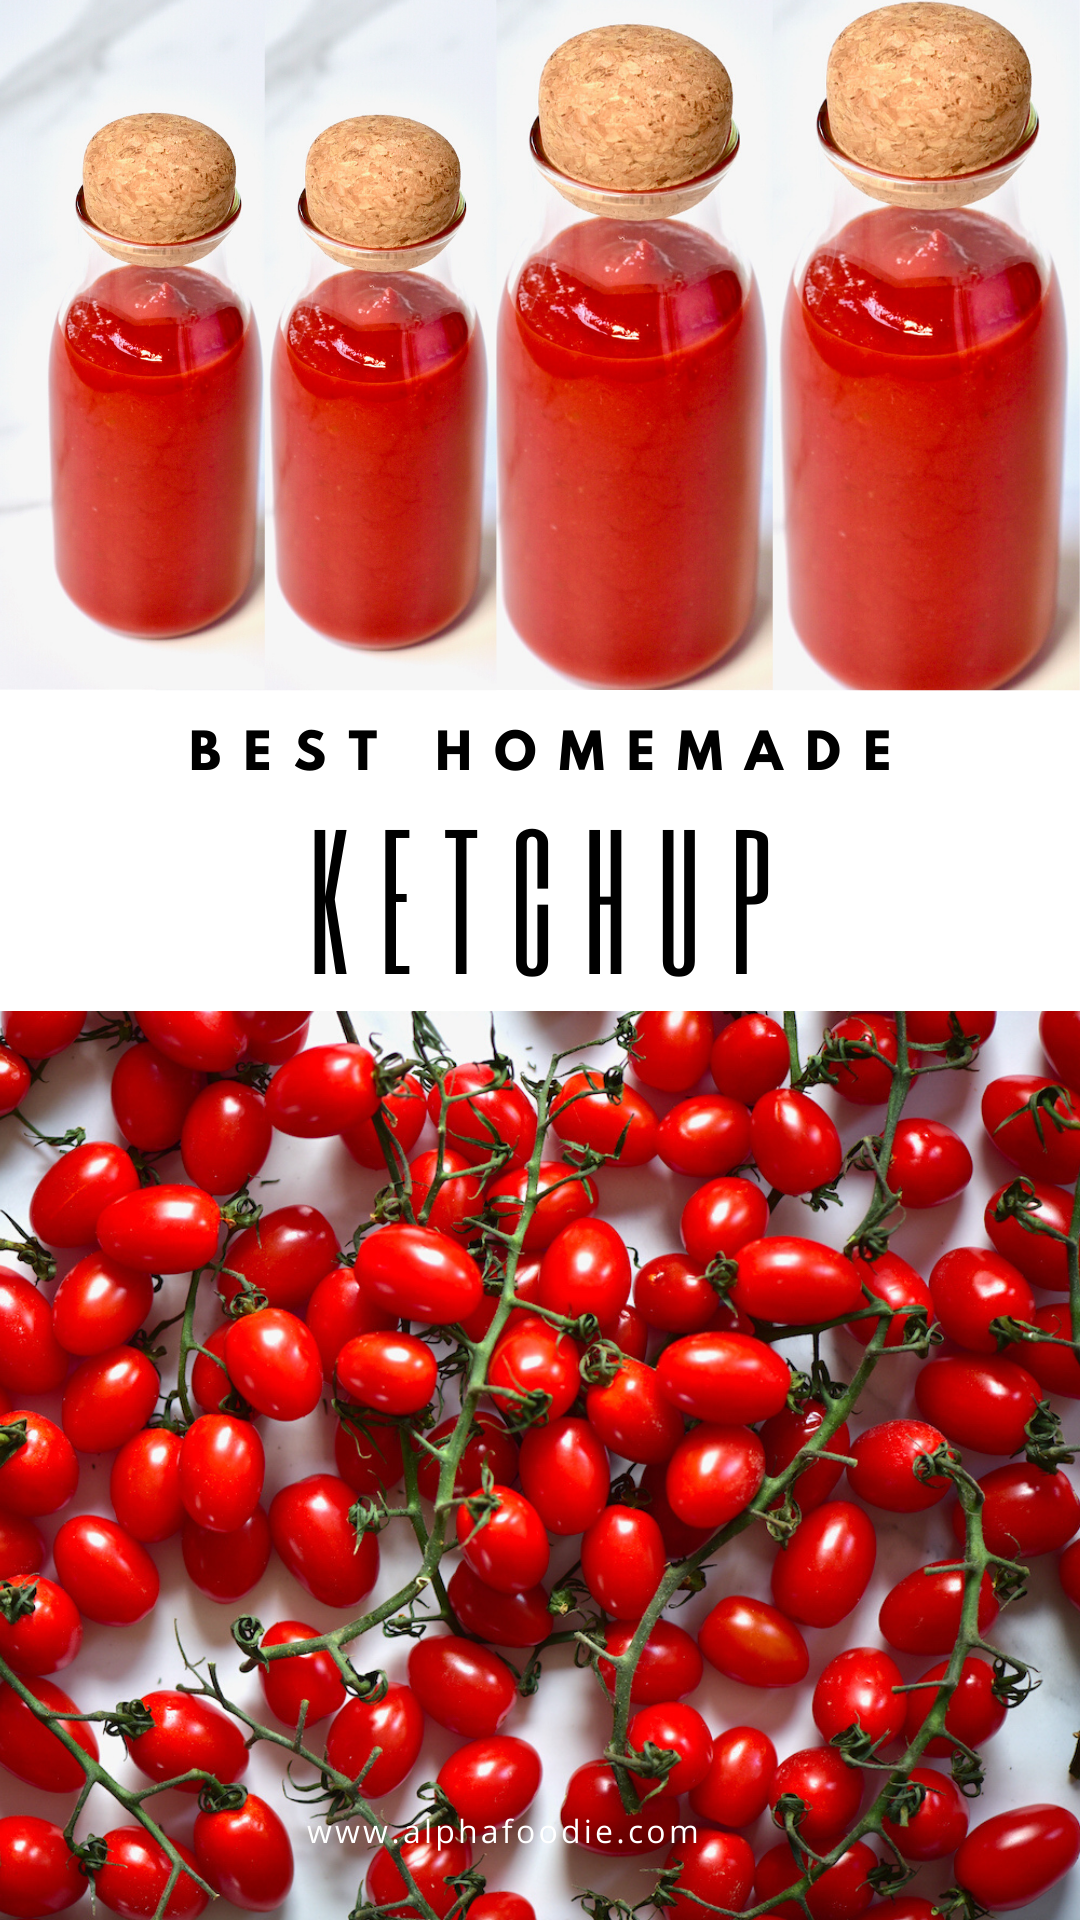 This simple Homemade Ketchup recipe is not only healthier than its store-bought competition, but it is also so much more addictively delicious as you can control the exact amount of sugar, salt and spices added to the sweet tomato blend.